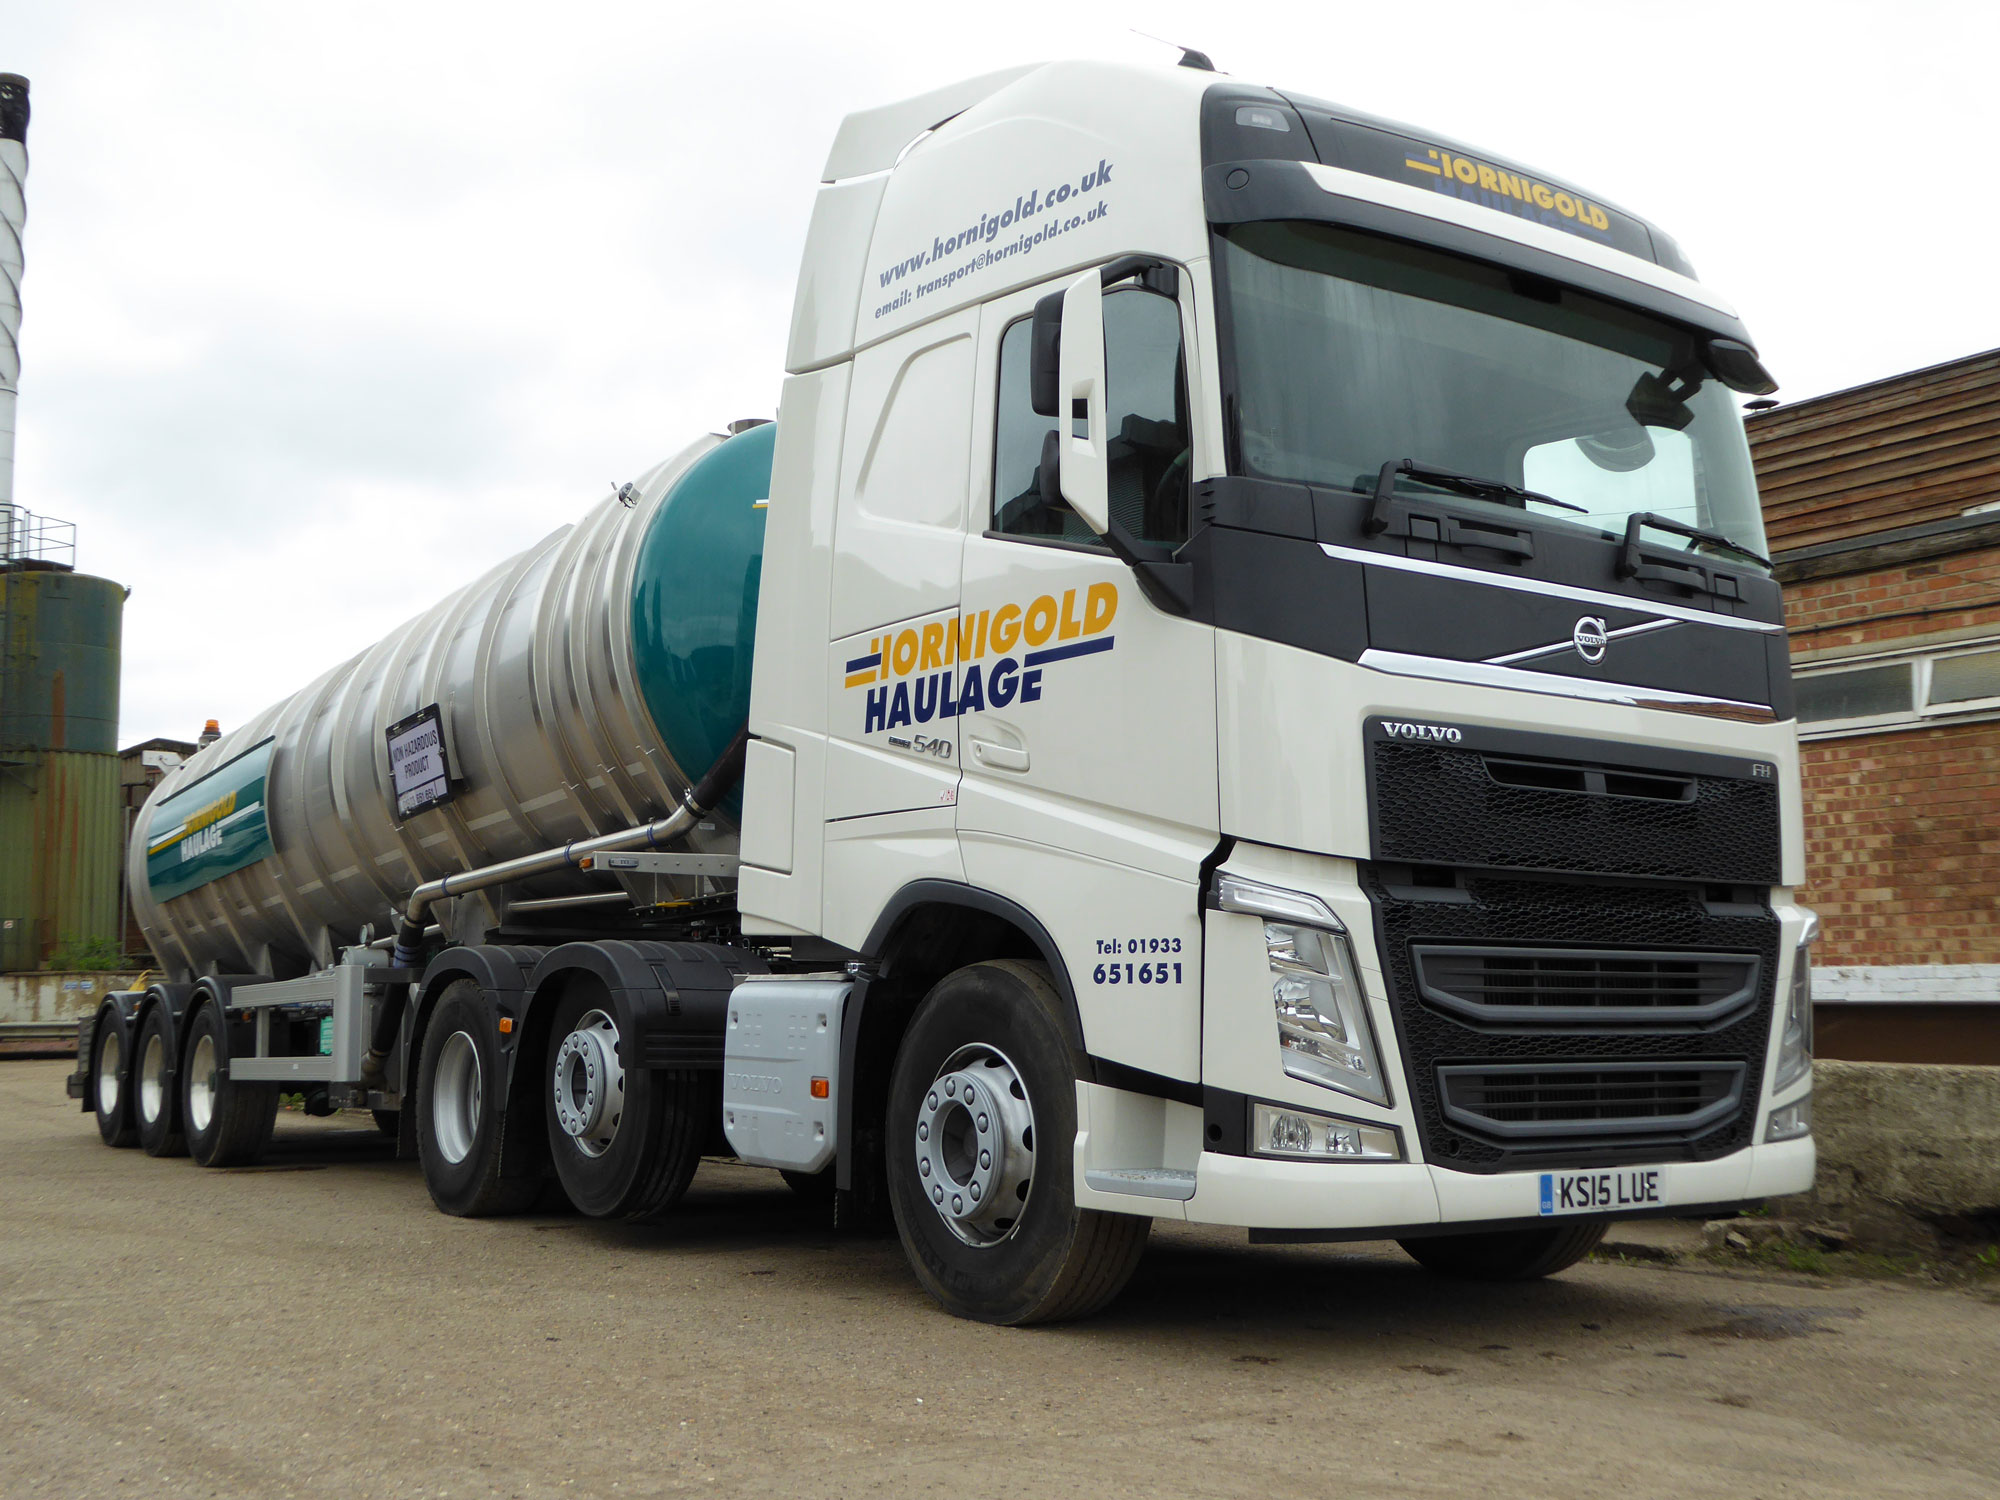 Non-Hazardous Waste with Hornigold Haulage